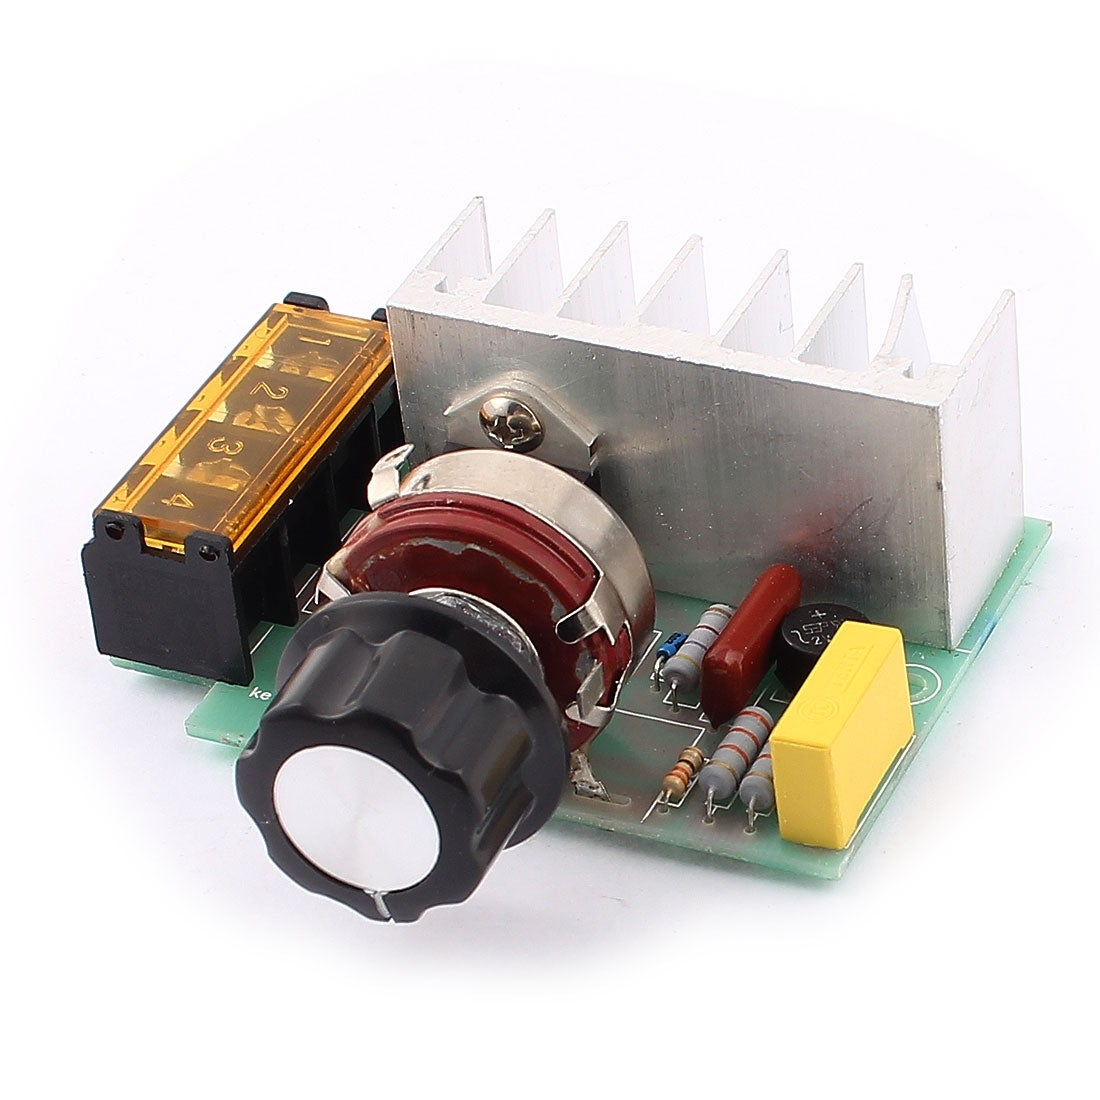 Ac220v 4000w Scr Motor Speed Controller Voltage Regulator Module Ac Picture Control Of Using Modulation Free Shipping On Orders Over 45 Overstock 24582434